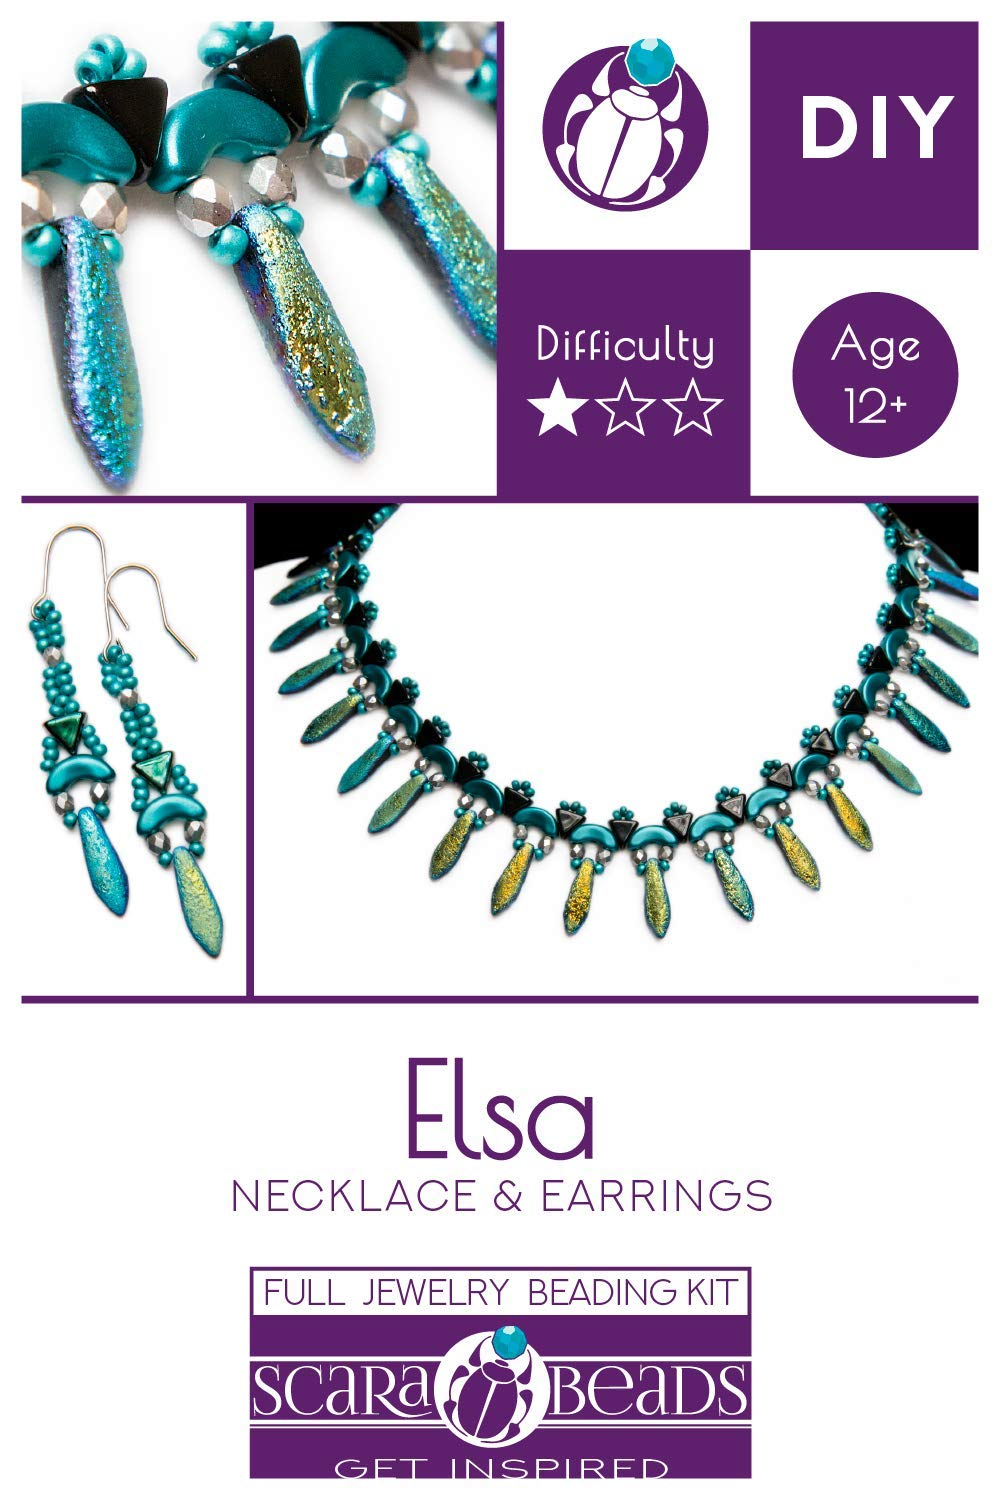 'Exclusive Beading Kit for DIY Jewelry Making Elsa ScaraBeads